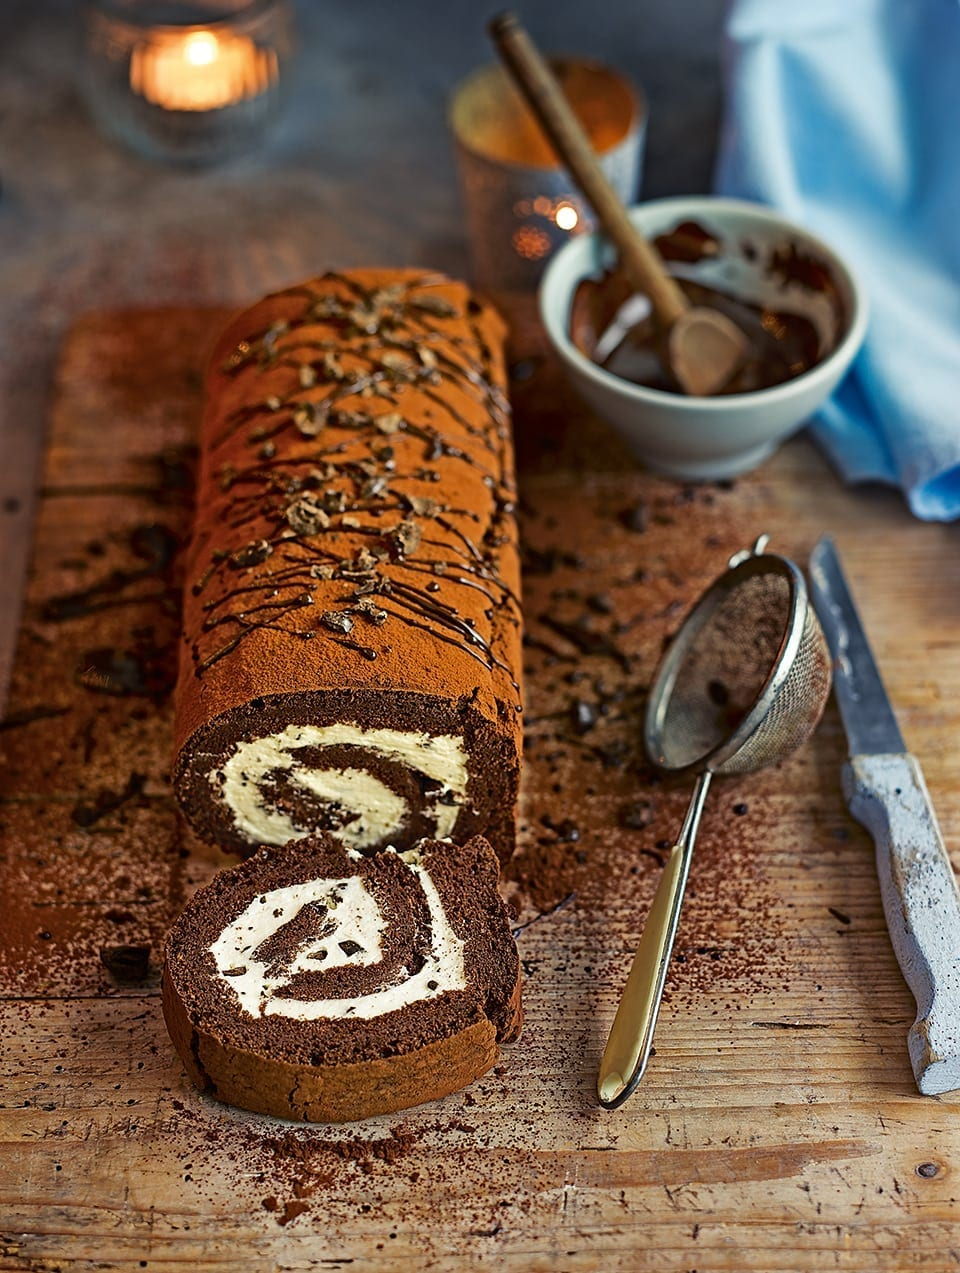 This Chocolate And Coffee Swiss Roll Recipe Has Been Updated With A Generous Splash Of Coffee Added In To The Cake Roll Recipes Chocolate Swiss Roll Cake Roll